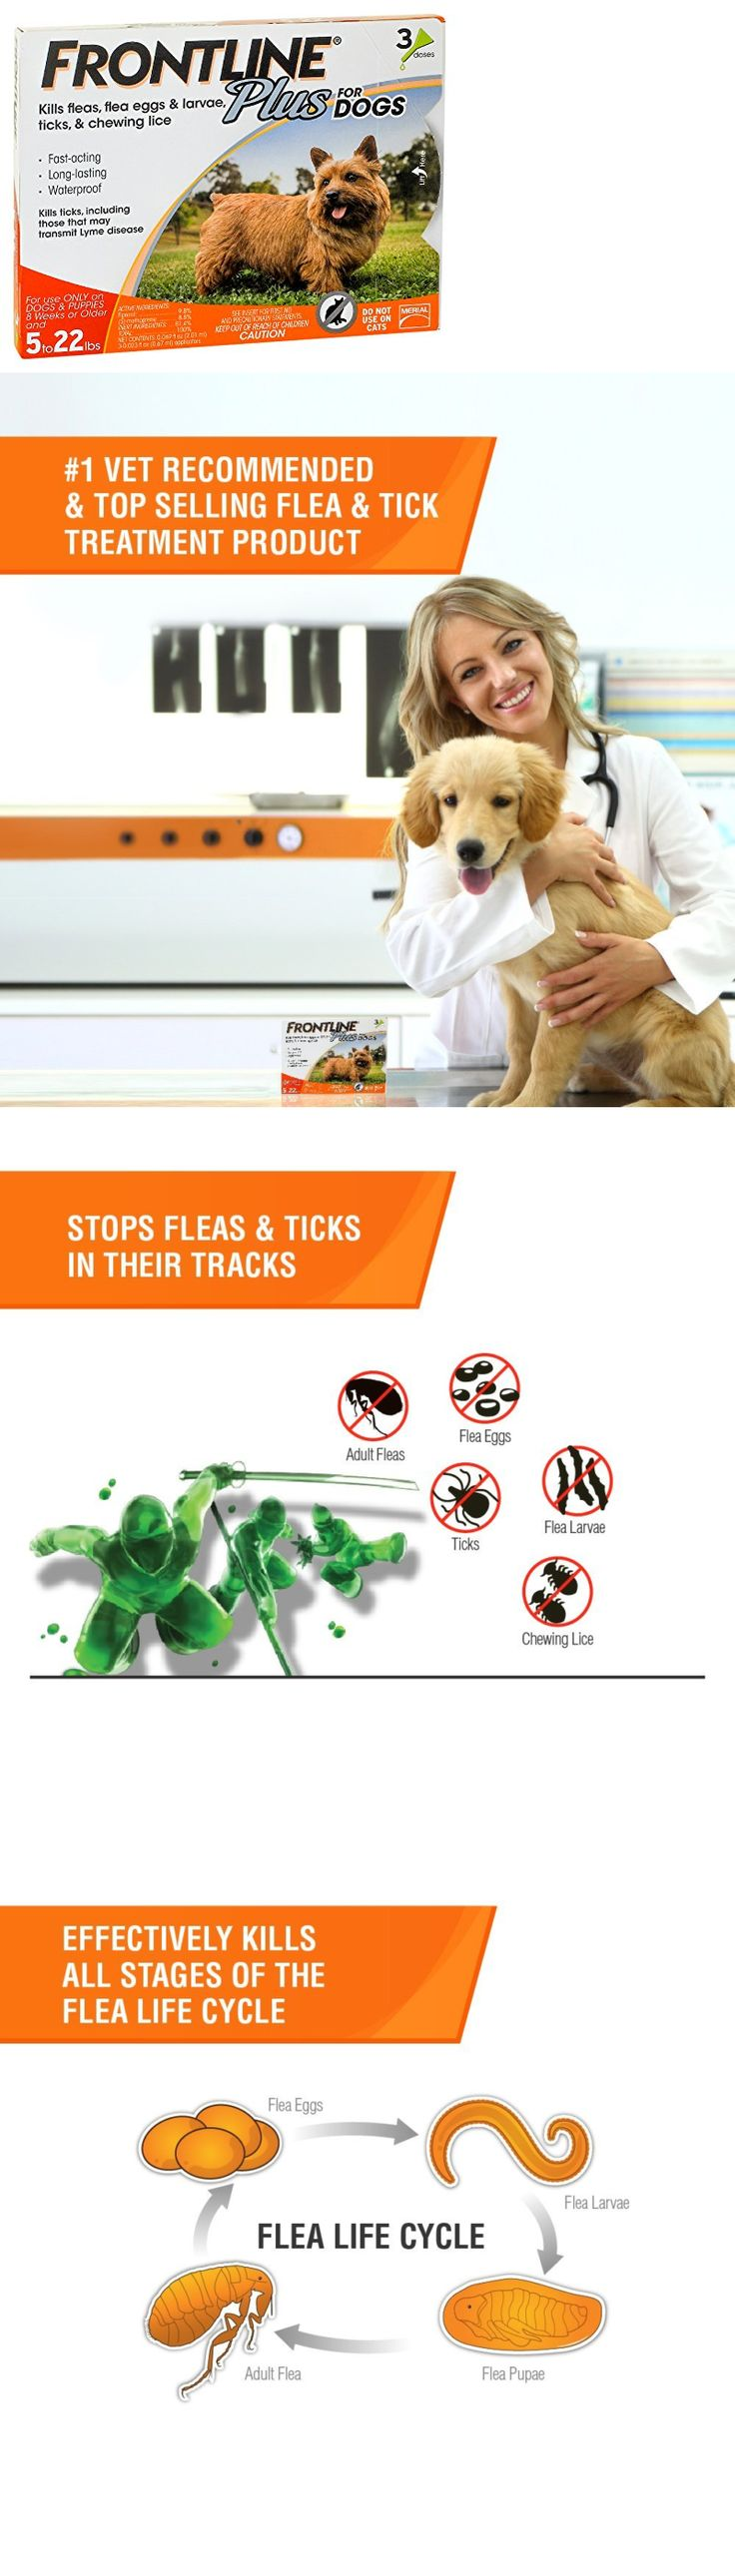 Flea and Tick Remedies 20749: Merial Frontline Plus Flea And Tick Control For 5-22 Pound Dogs And Puppies, 3-D -> BUY IT NOW ONLY: $39.53 on eBay!